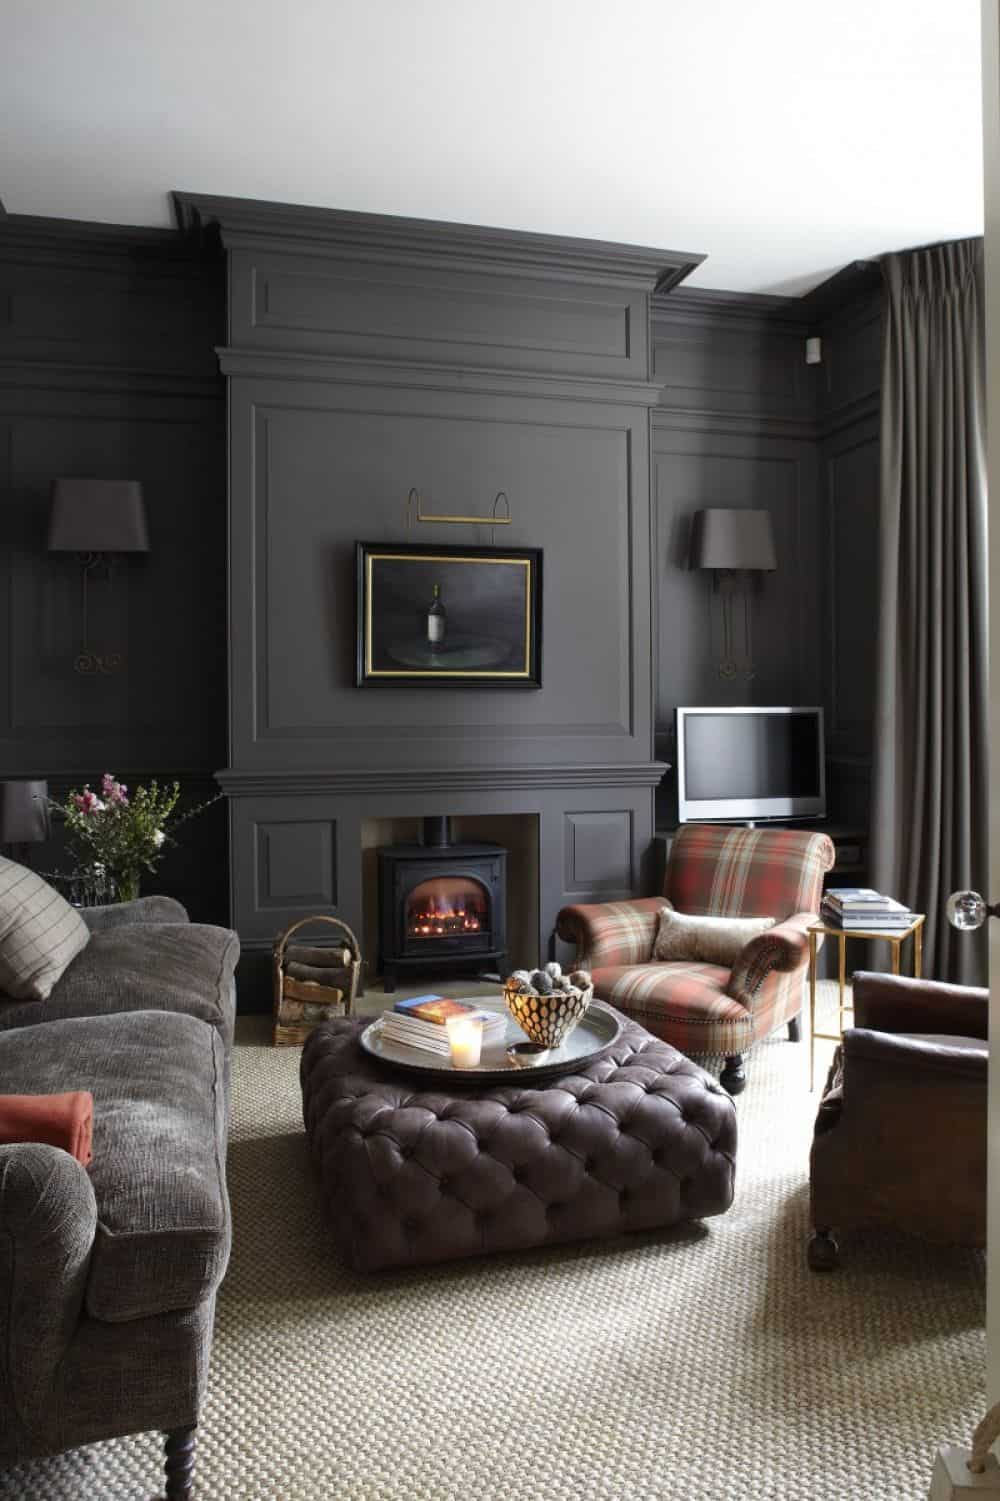 How to use charcoal grey in home decor based on colour theory